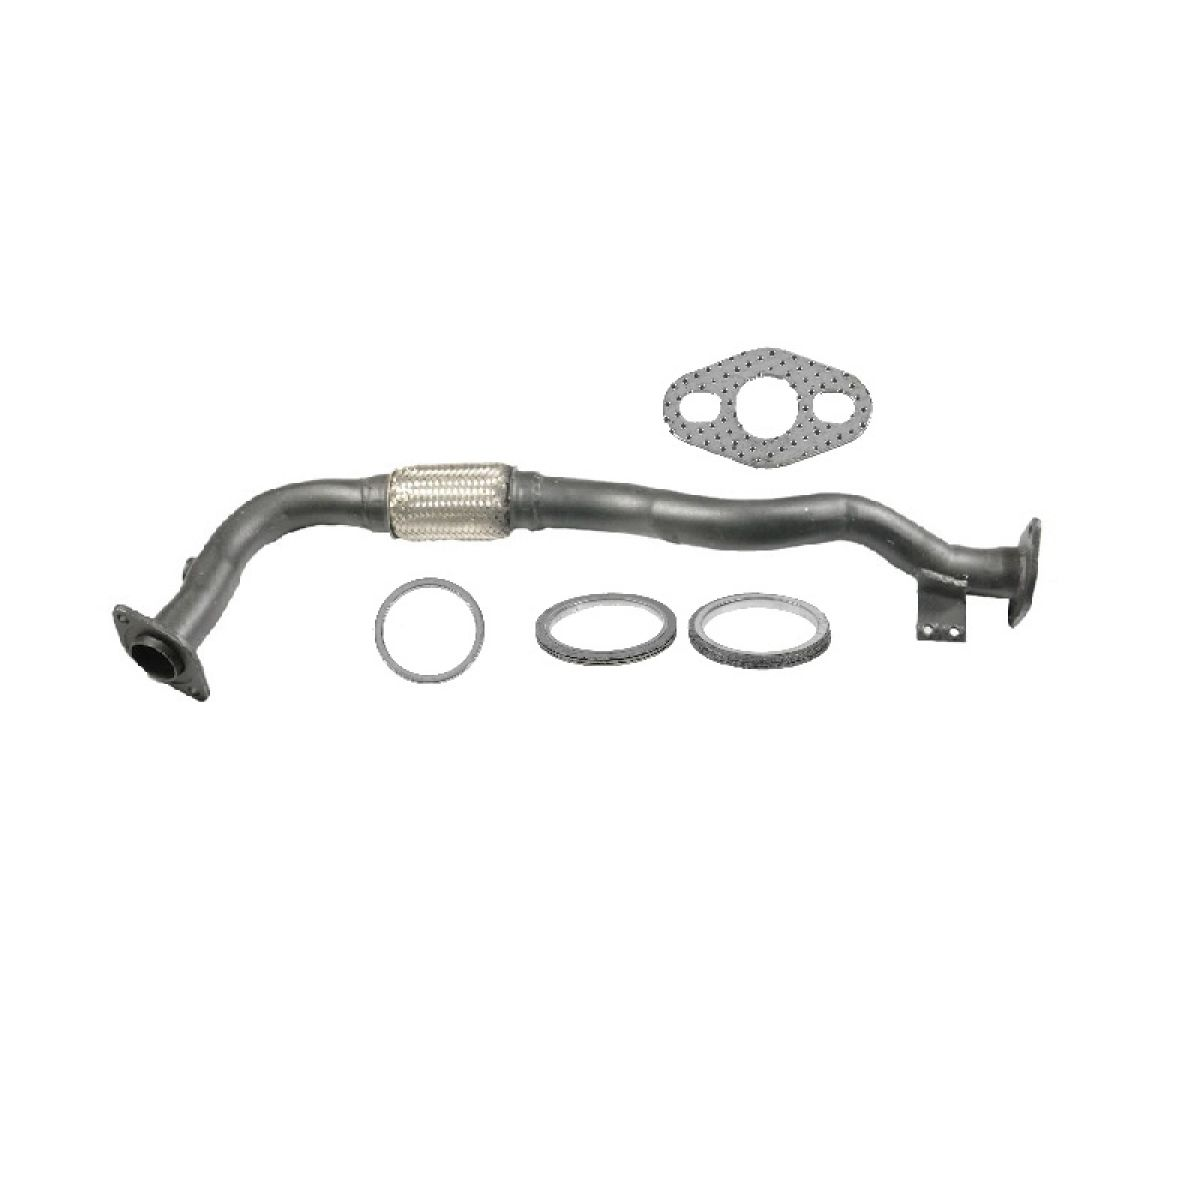 Braided Exhaust Flex Pipe With Gaskets For 95 97 Prizm